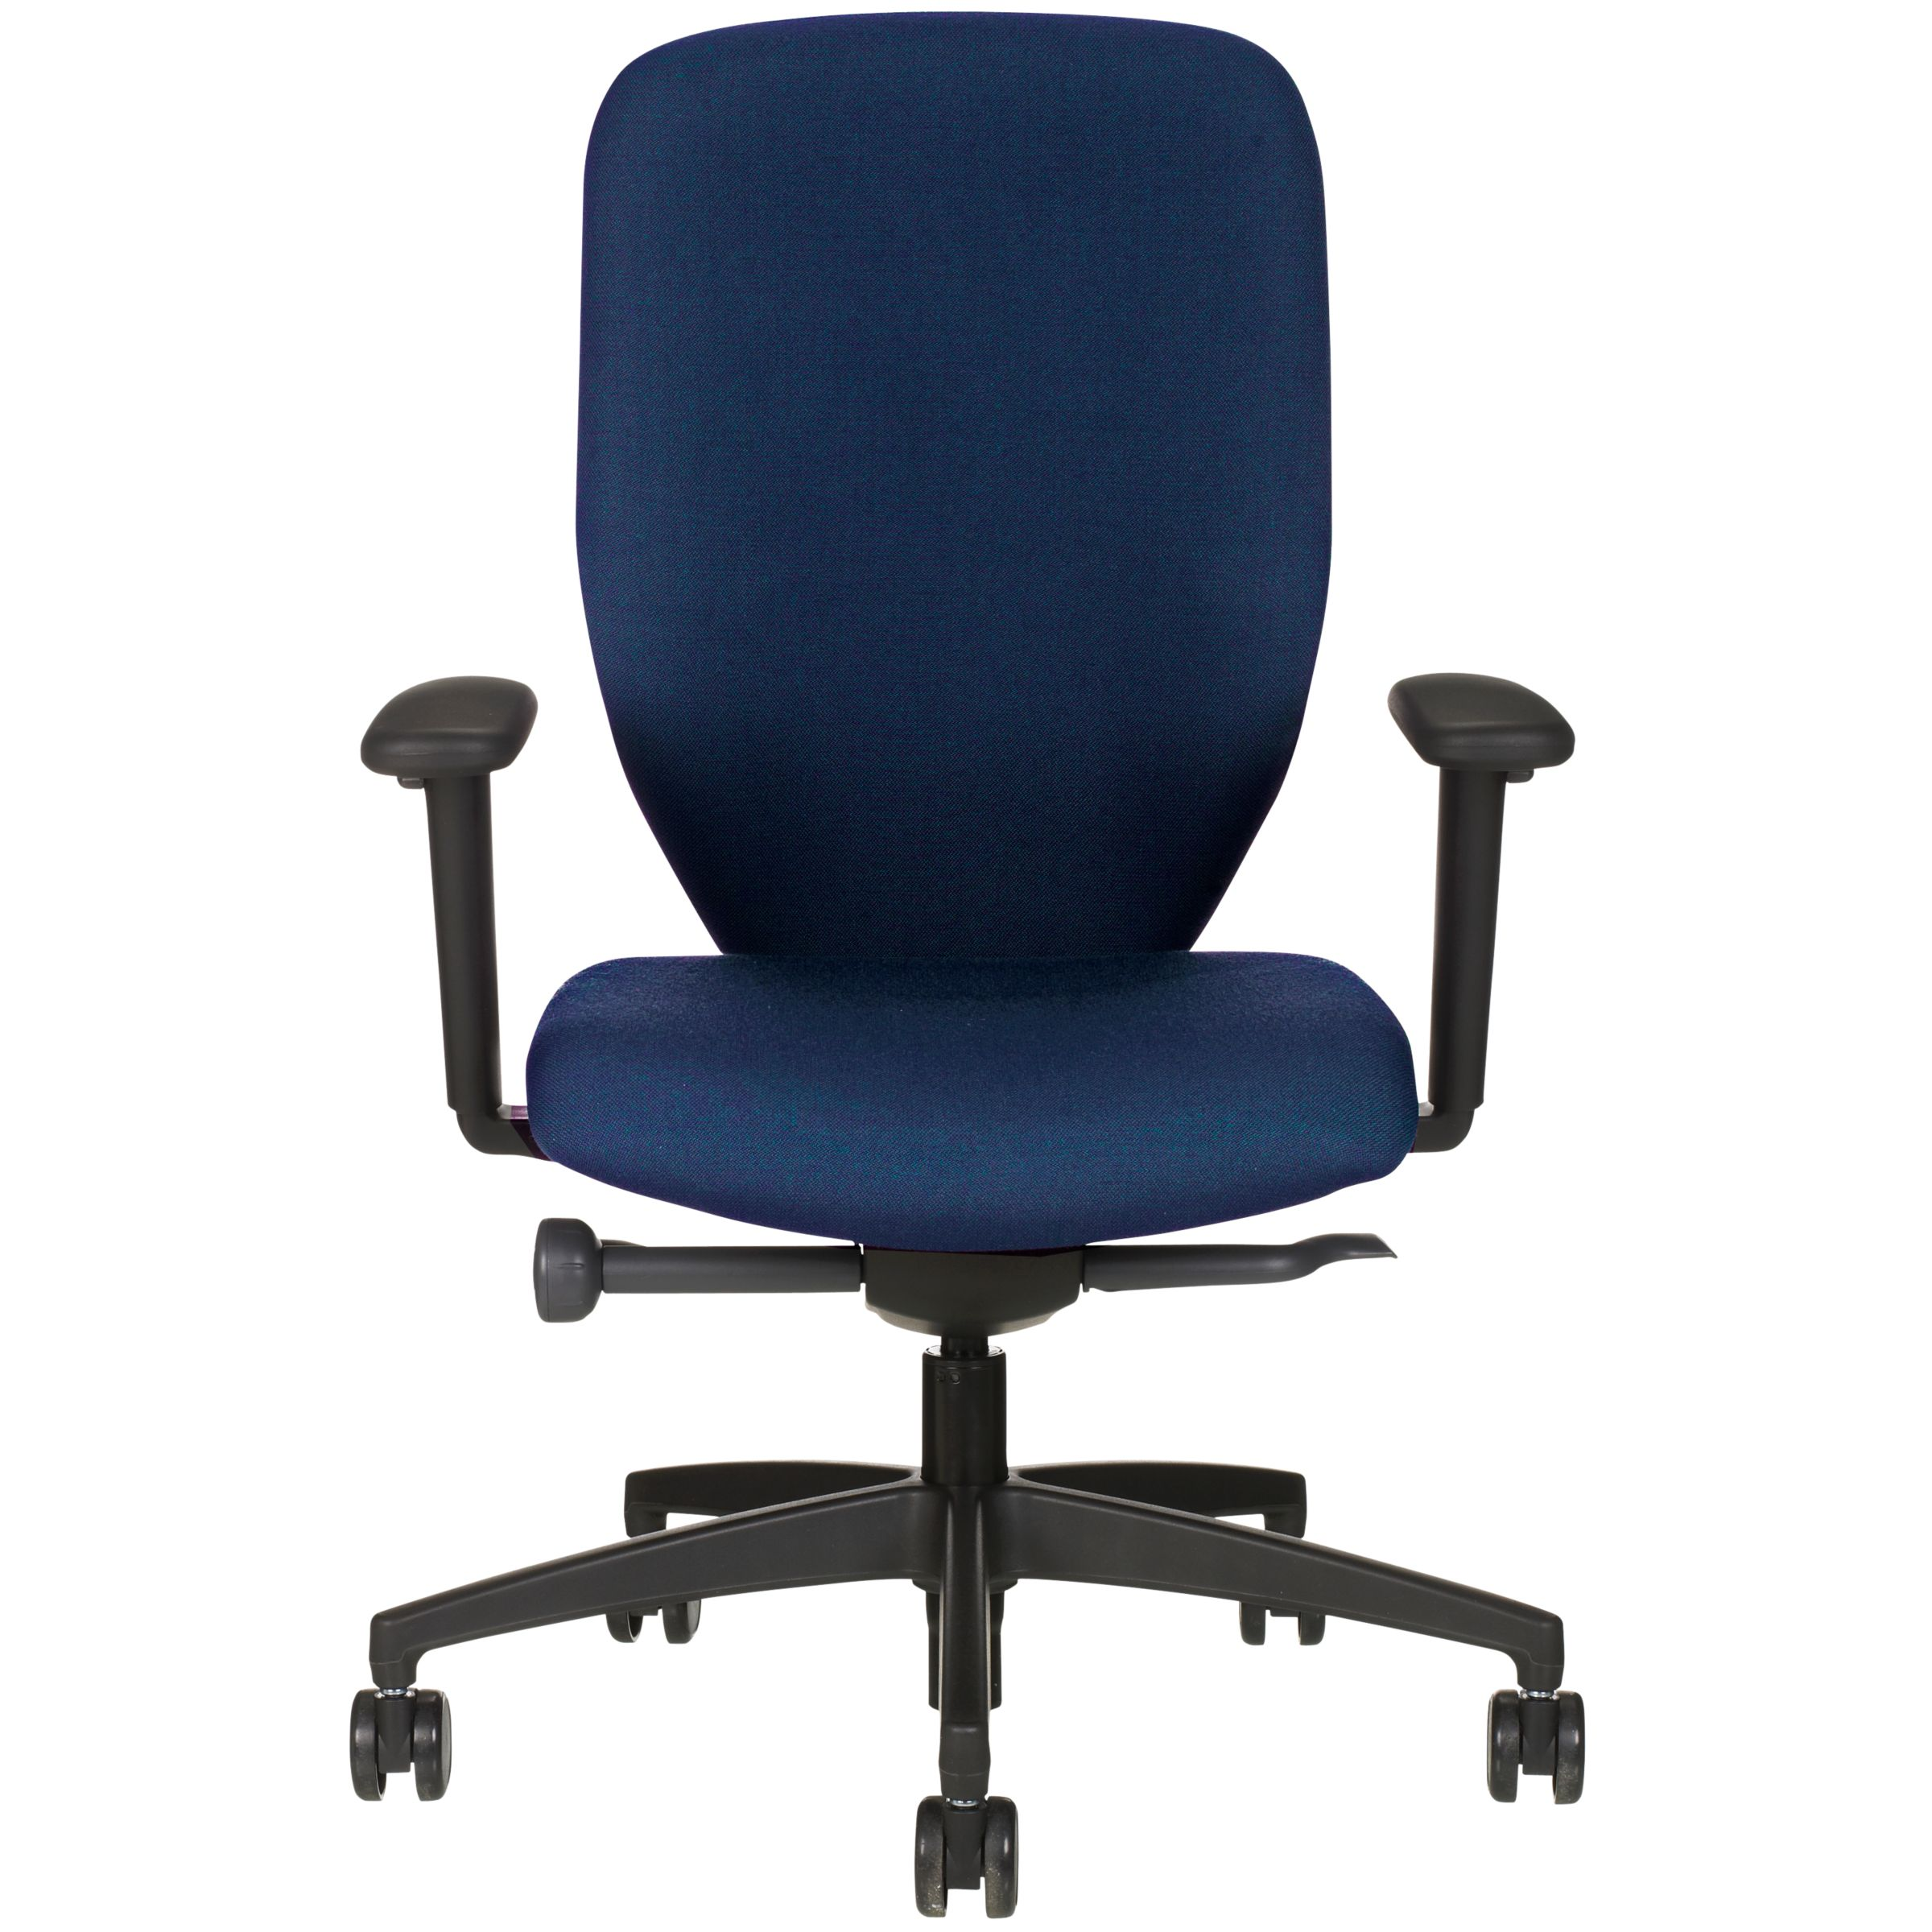 Boss Design Lily Office Chair, Cleanse